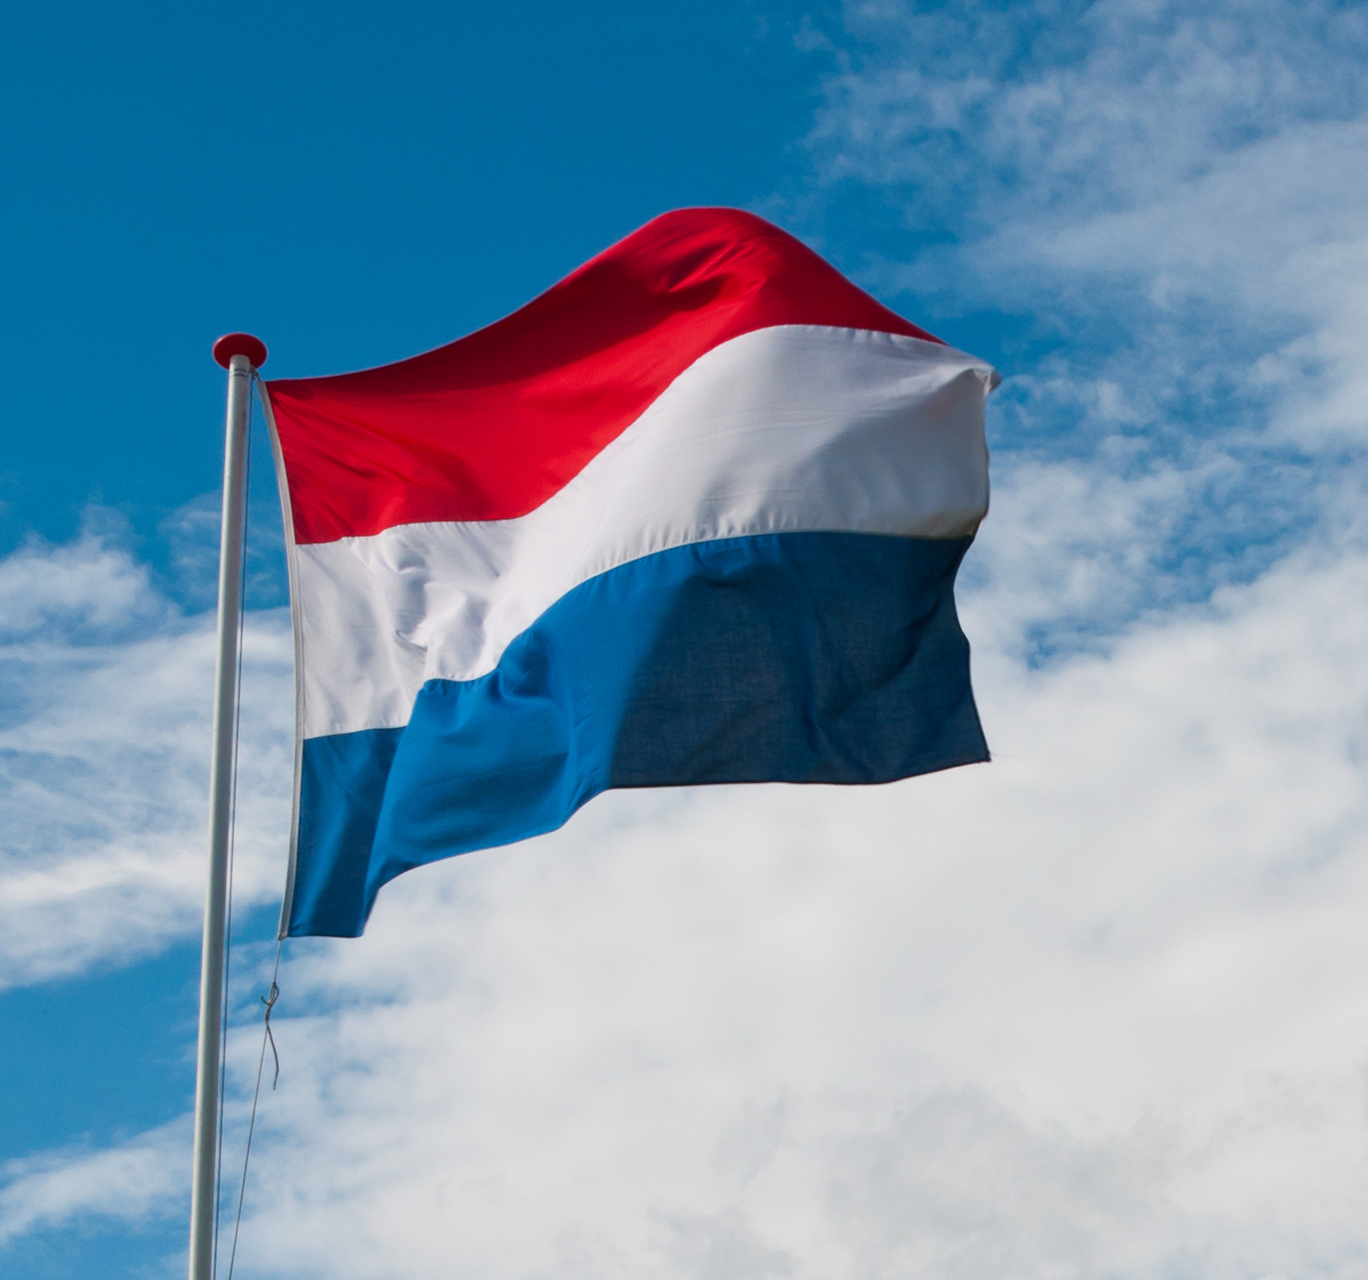 Flag-Blickle-afdeling-Netherlands